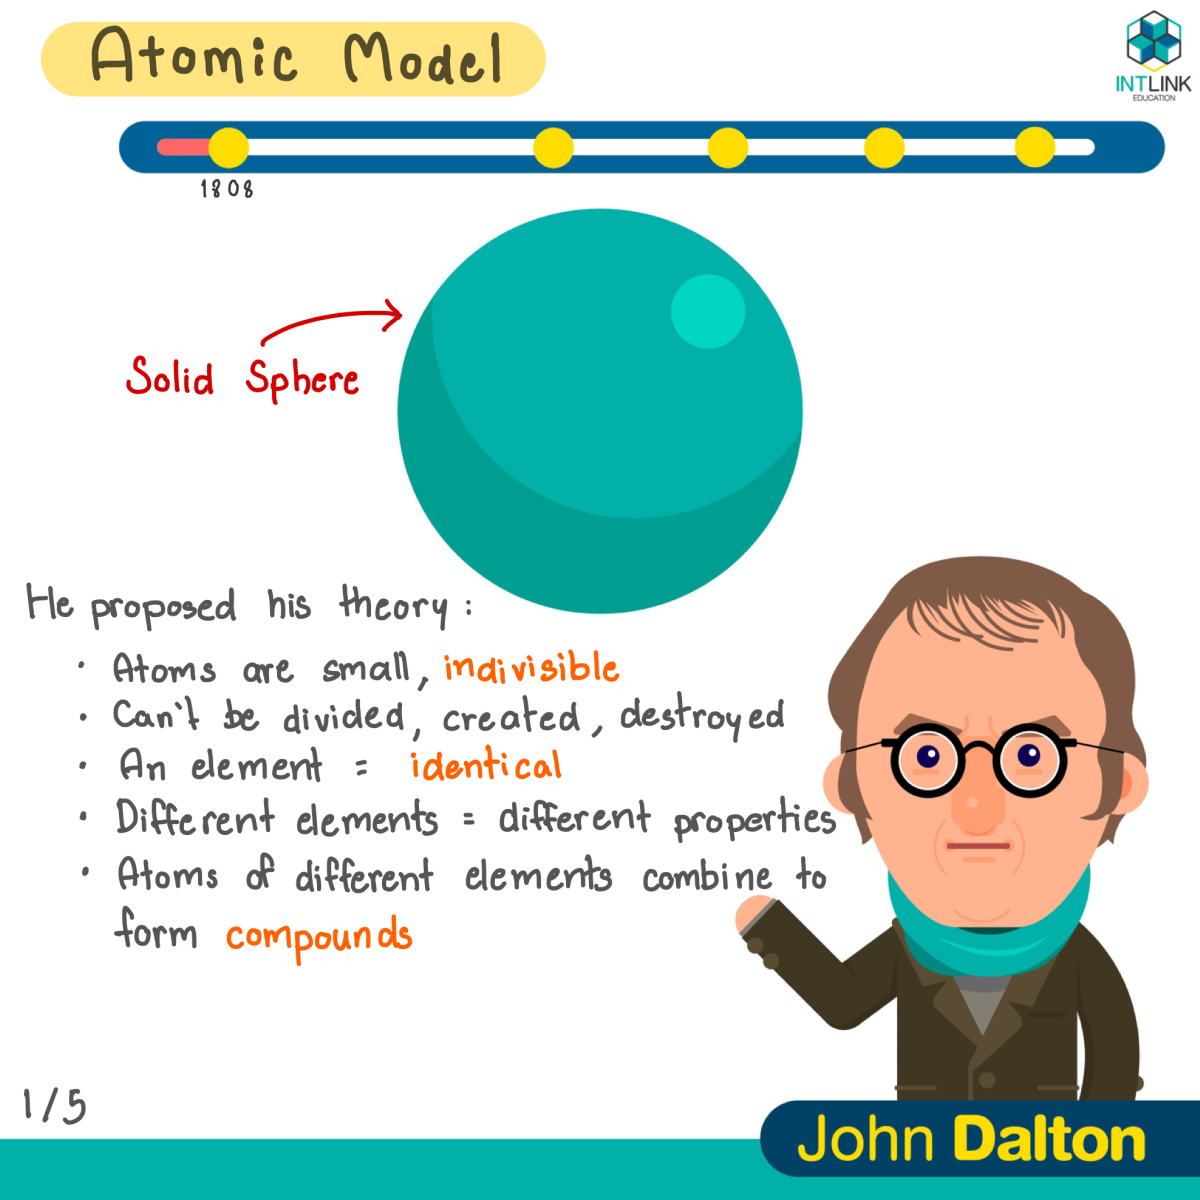 A Timeline Of Atomic Models